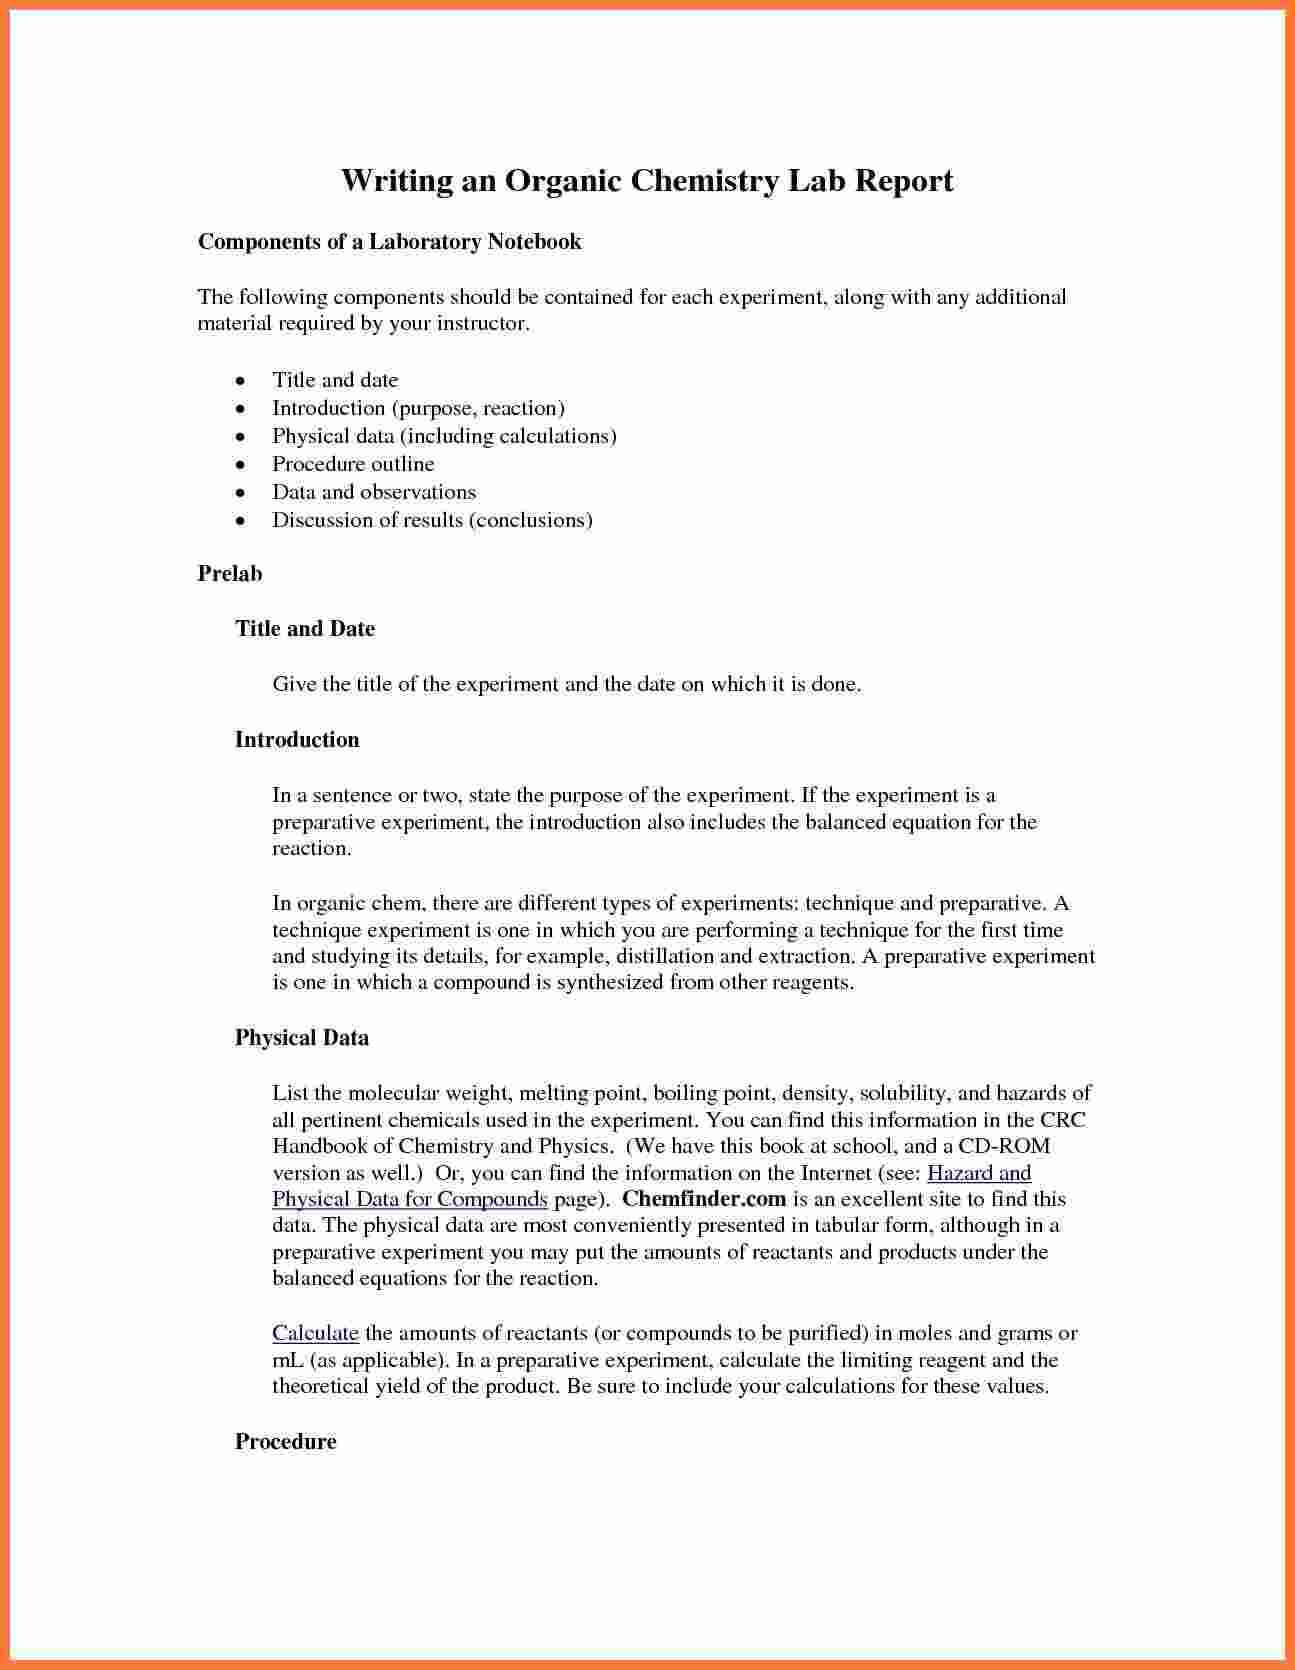 003 Organic Chemistry Lab Report Example Also Ibmistry For Chemistry Lab Report Template